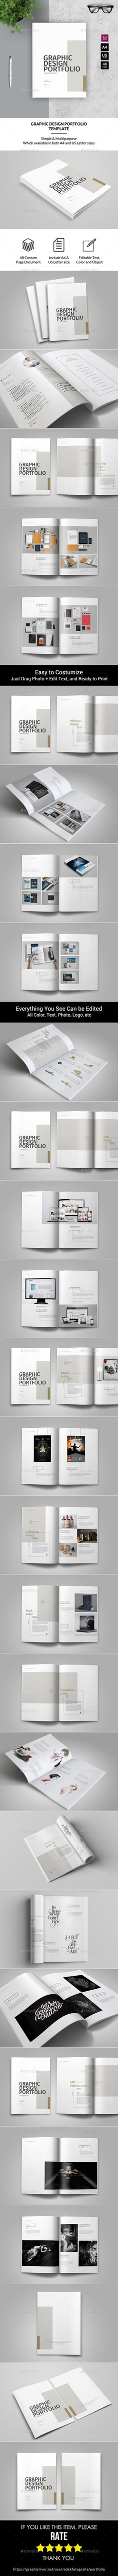 Graphic Design Portfolio Template — InDesign INDD #brochure template #us letter • Download ➝ https://graphicriver.net/item/graphic-design-portfolio-template/19701319?ref=pxcr